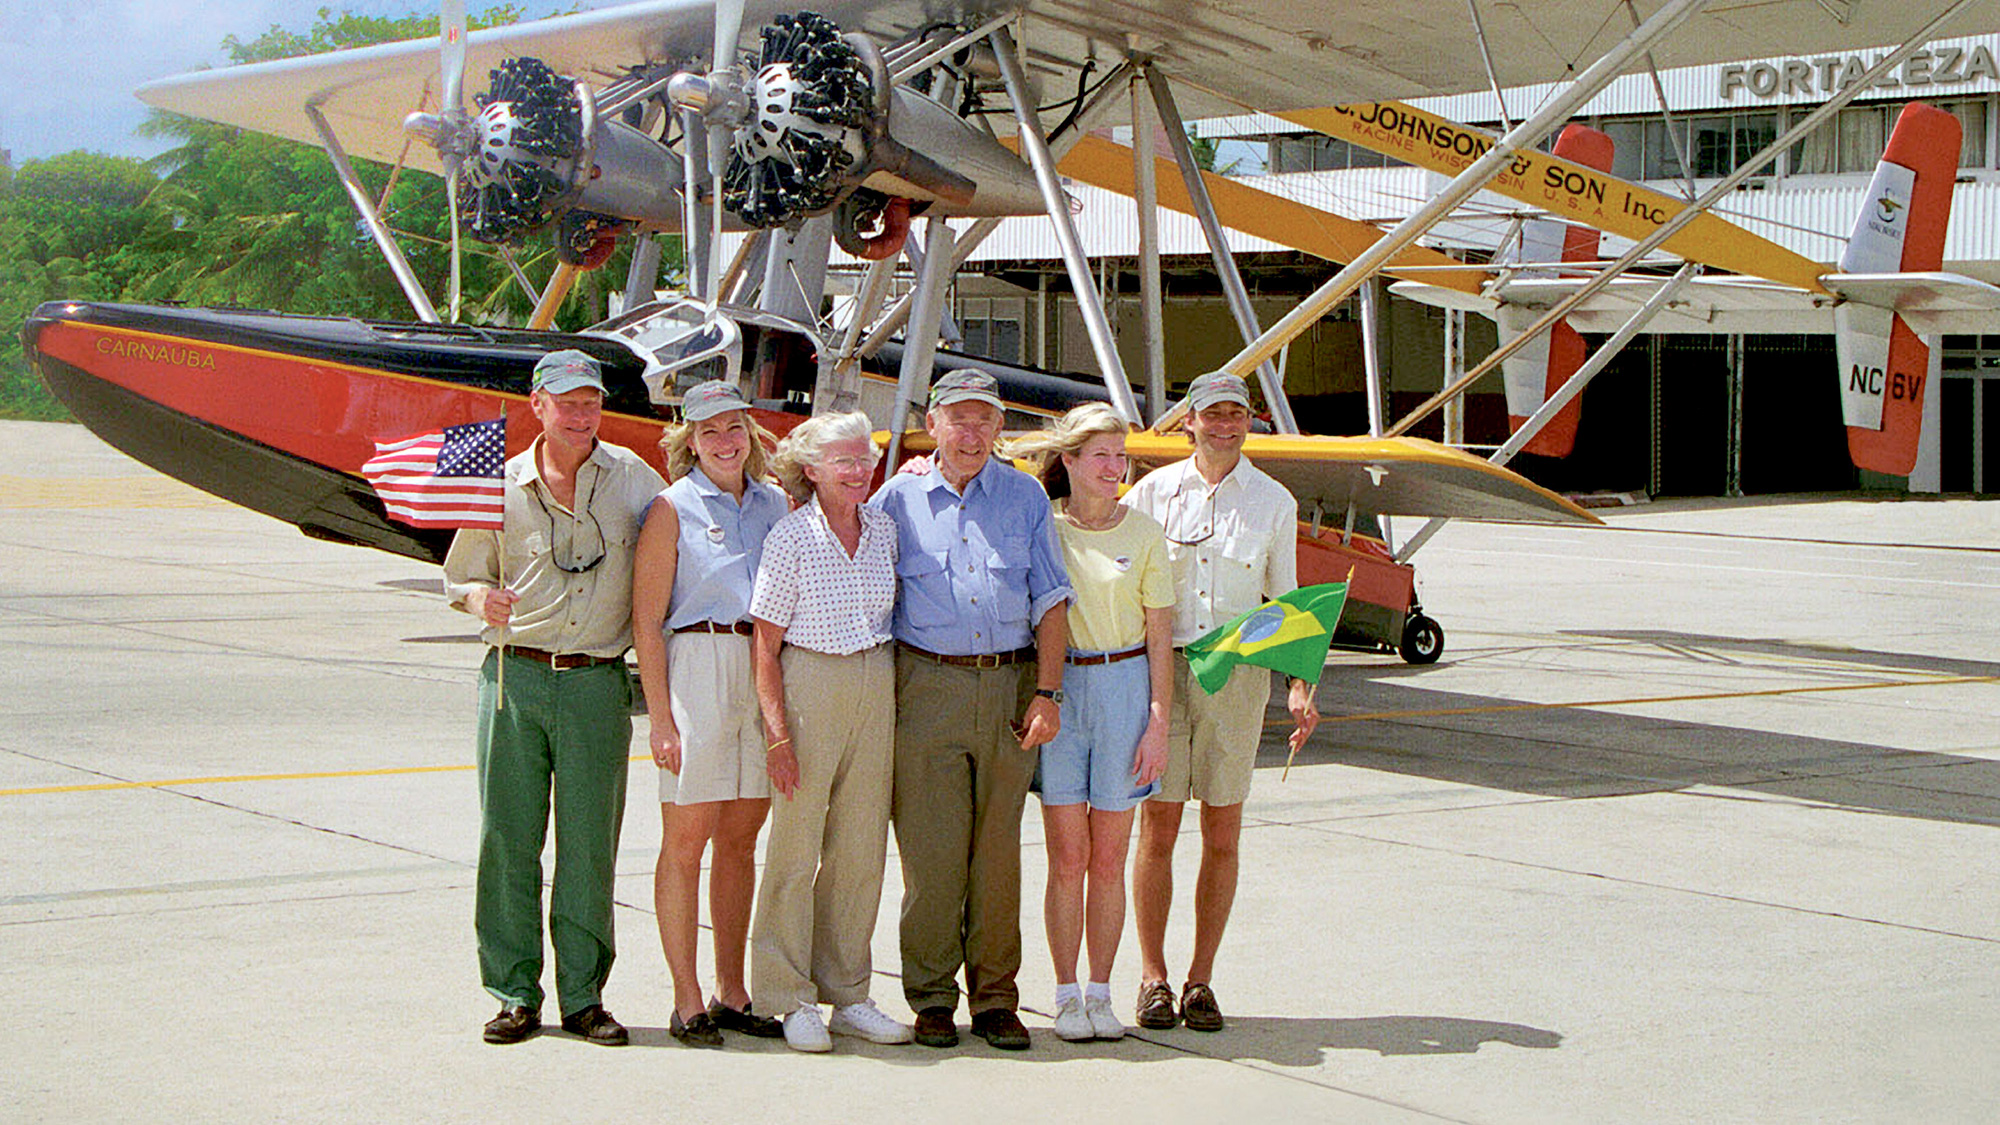 Gene Johnson with Johnson family in Brazil